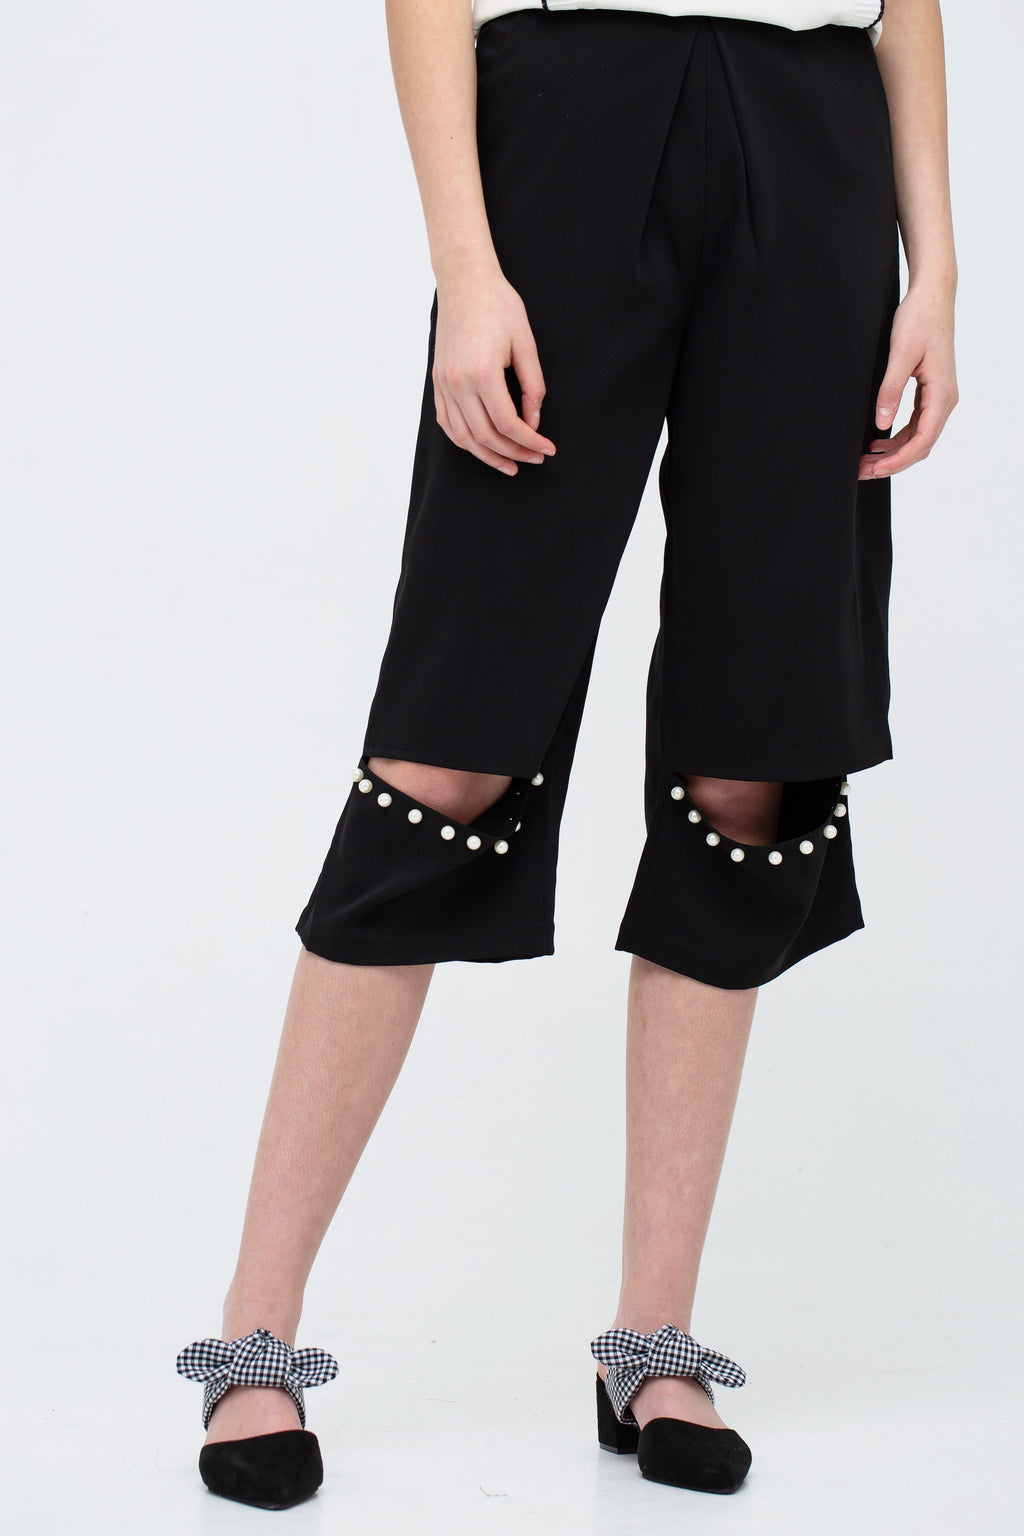 Opening Pearl Pants